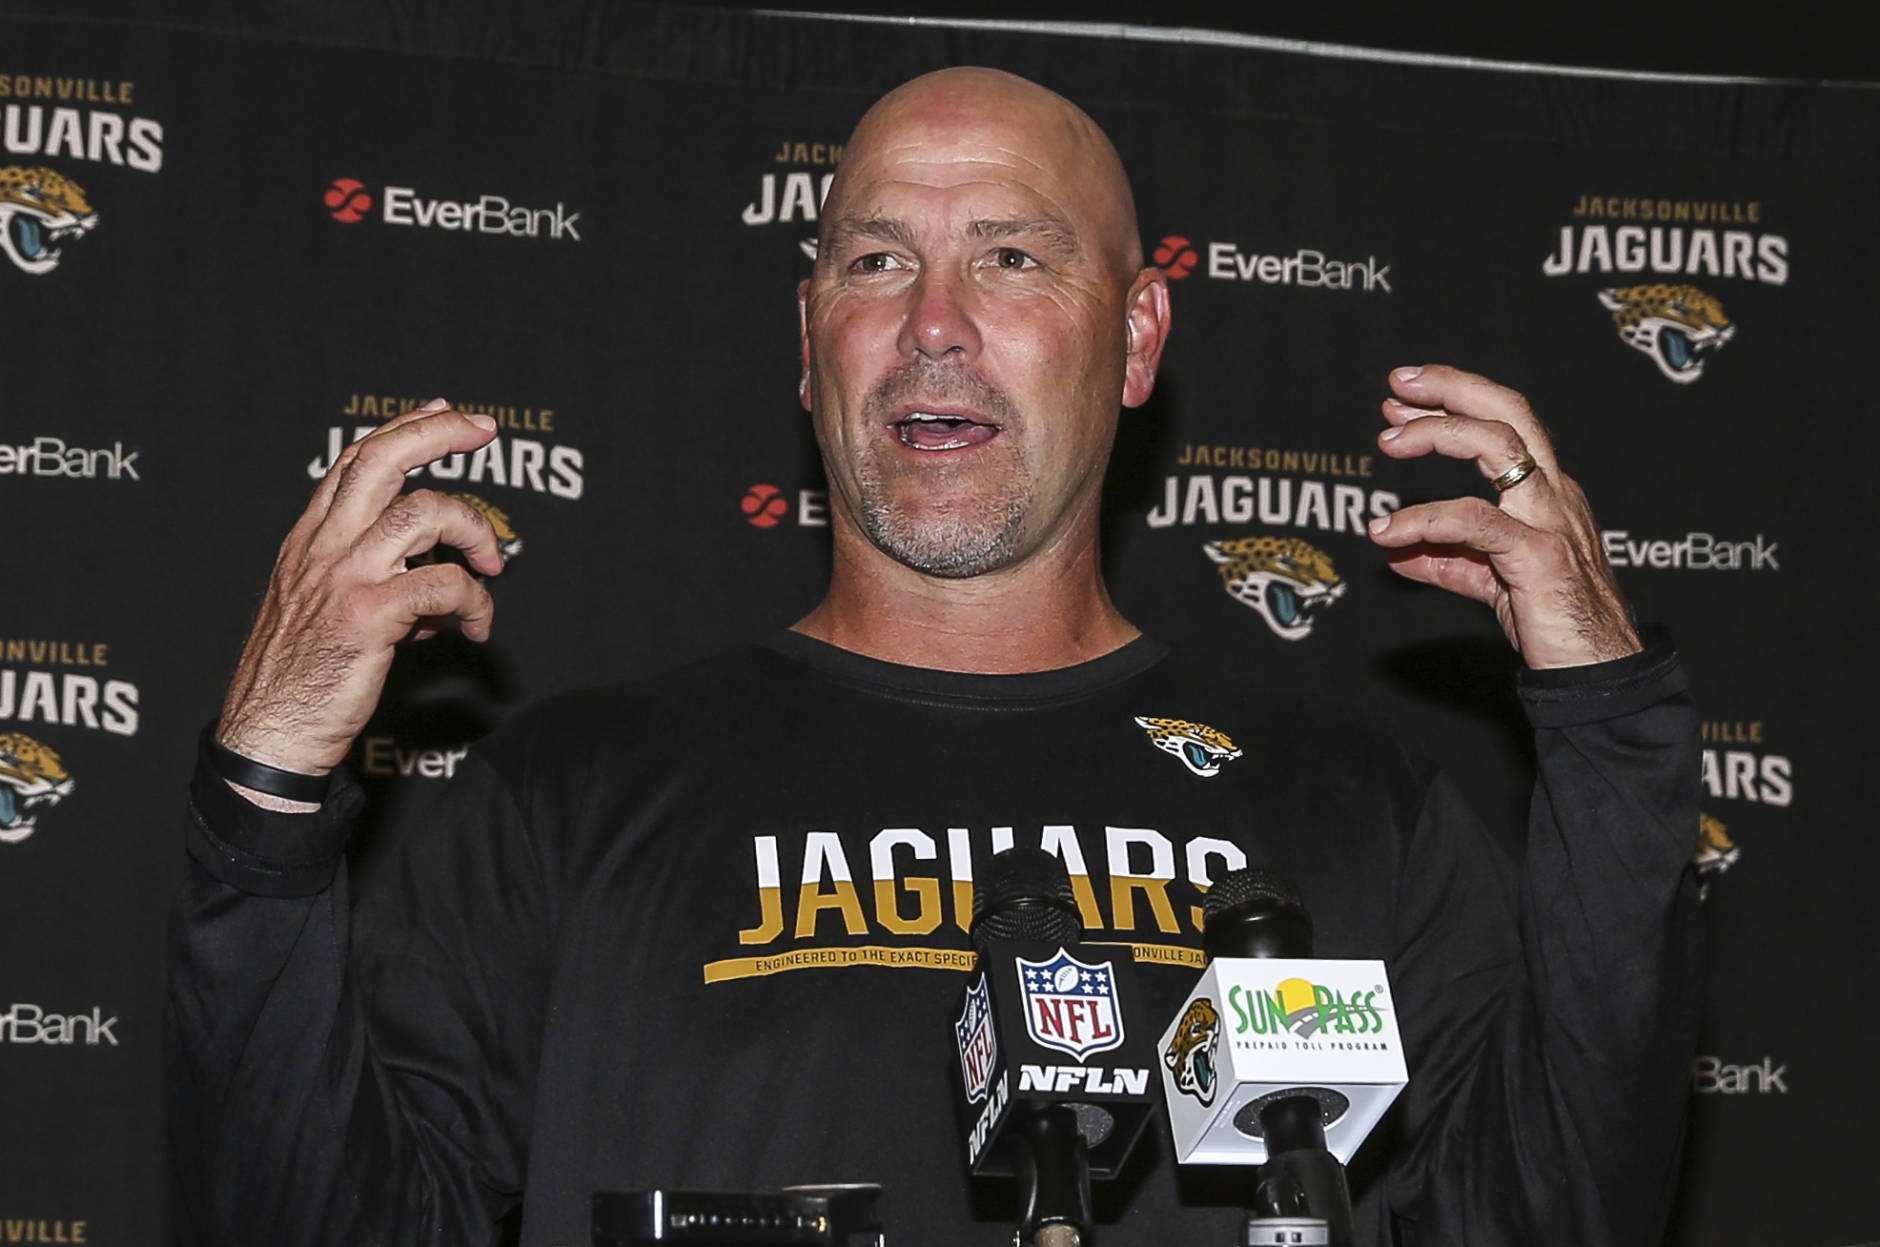 Jacksonville Jaguars head coach Gus Bradley talks to the press after losing an NFL football game to the Denver Broncos 20-10 in Jacksonville, Fla., Sunday, Dec. 4, 2016. (AP Photo/Gary McCullough)